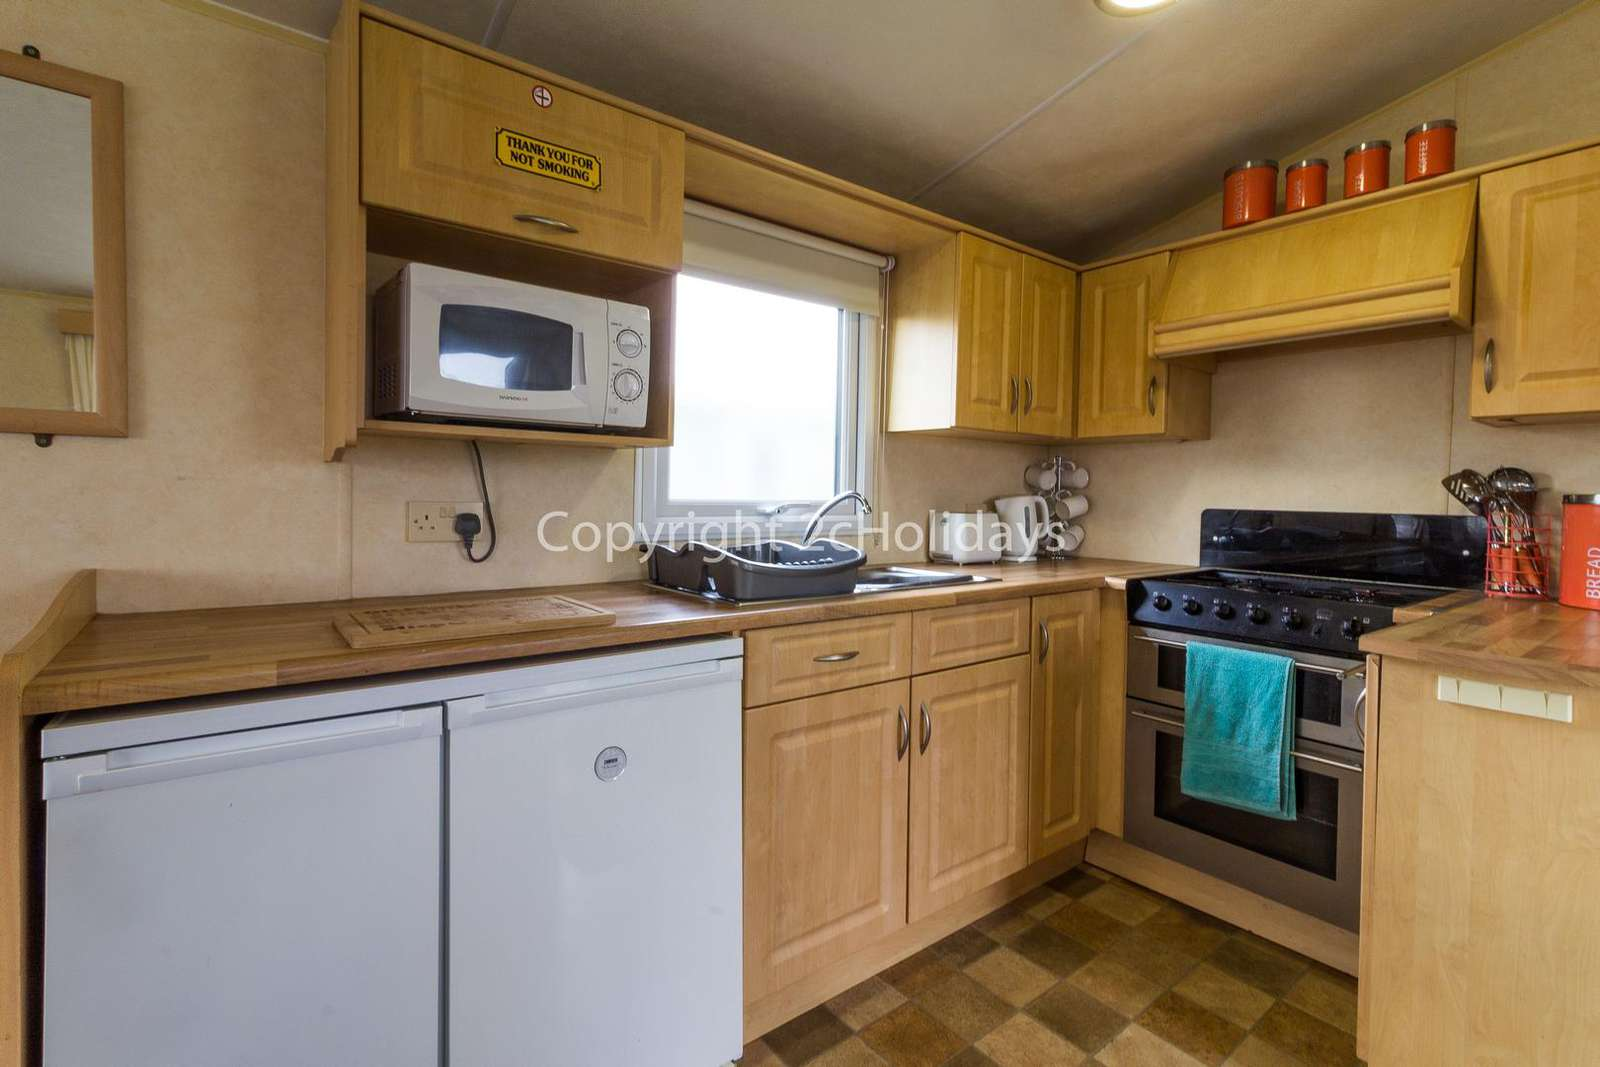 A fully equipped kitchen, perfect for. self-catering holidays!